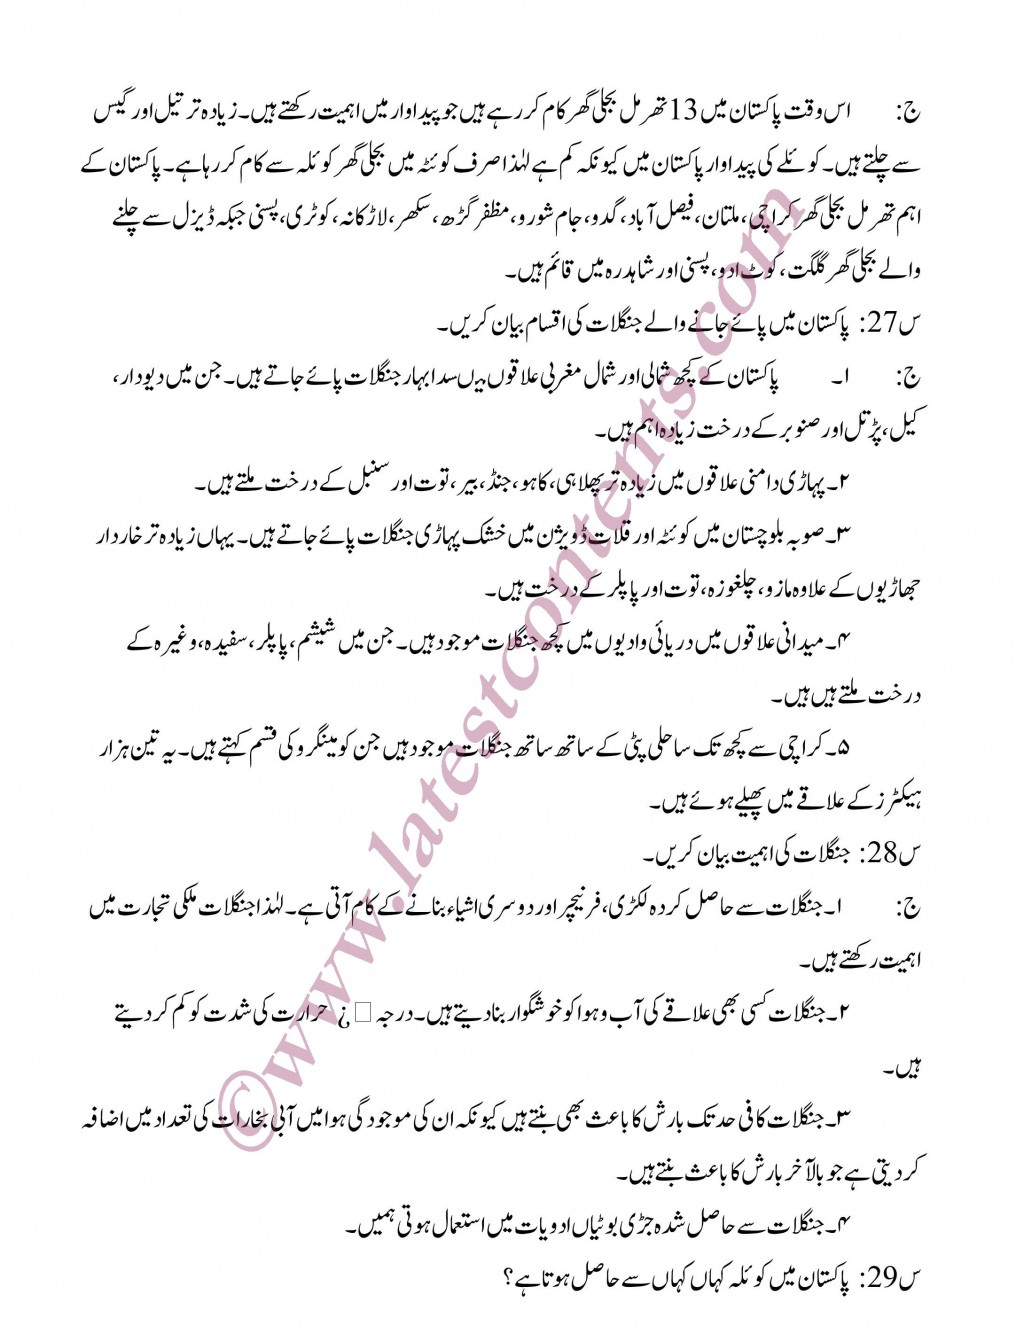 015 Issues To Write An Essay About Persuasive Social Media Essays On Topics Easiest Topic Pak Studies Short Questions Notes In Ur Funny Good Argumentative Interesting Paper Easy Awesome For High School Large